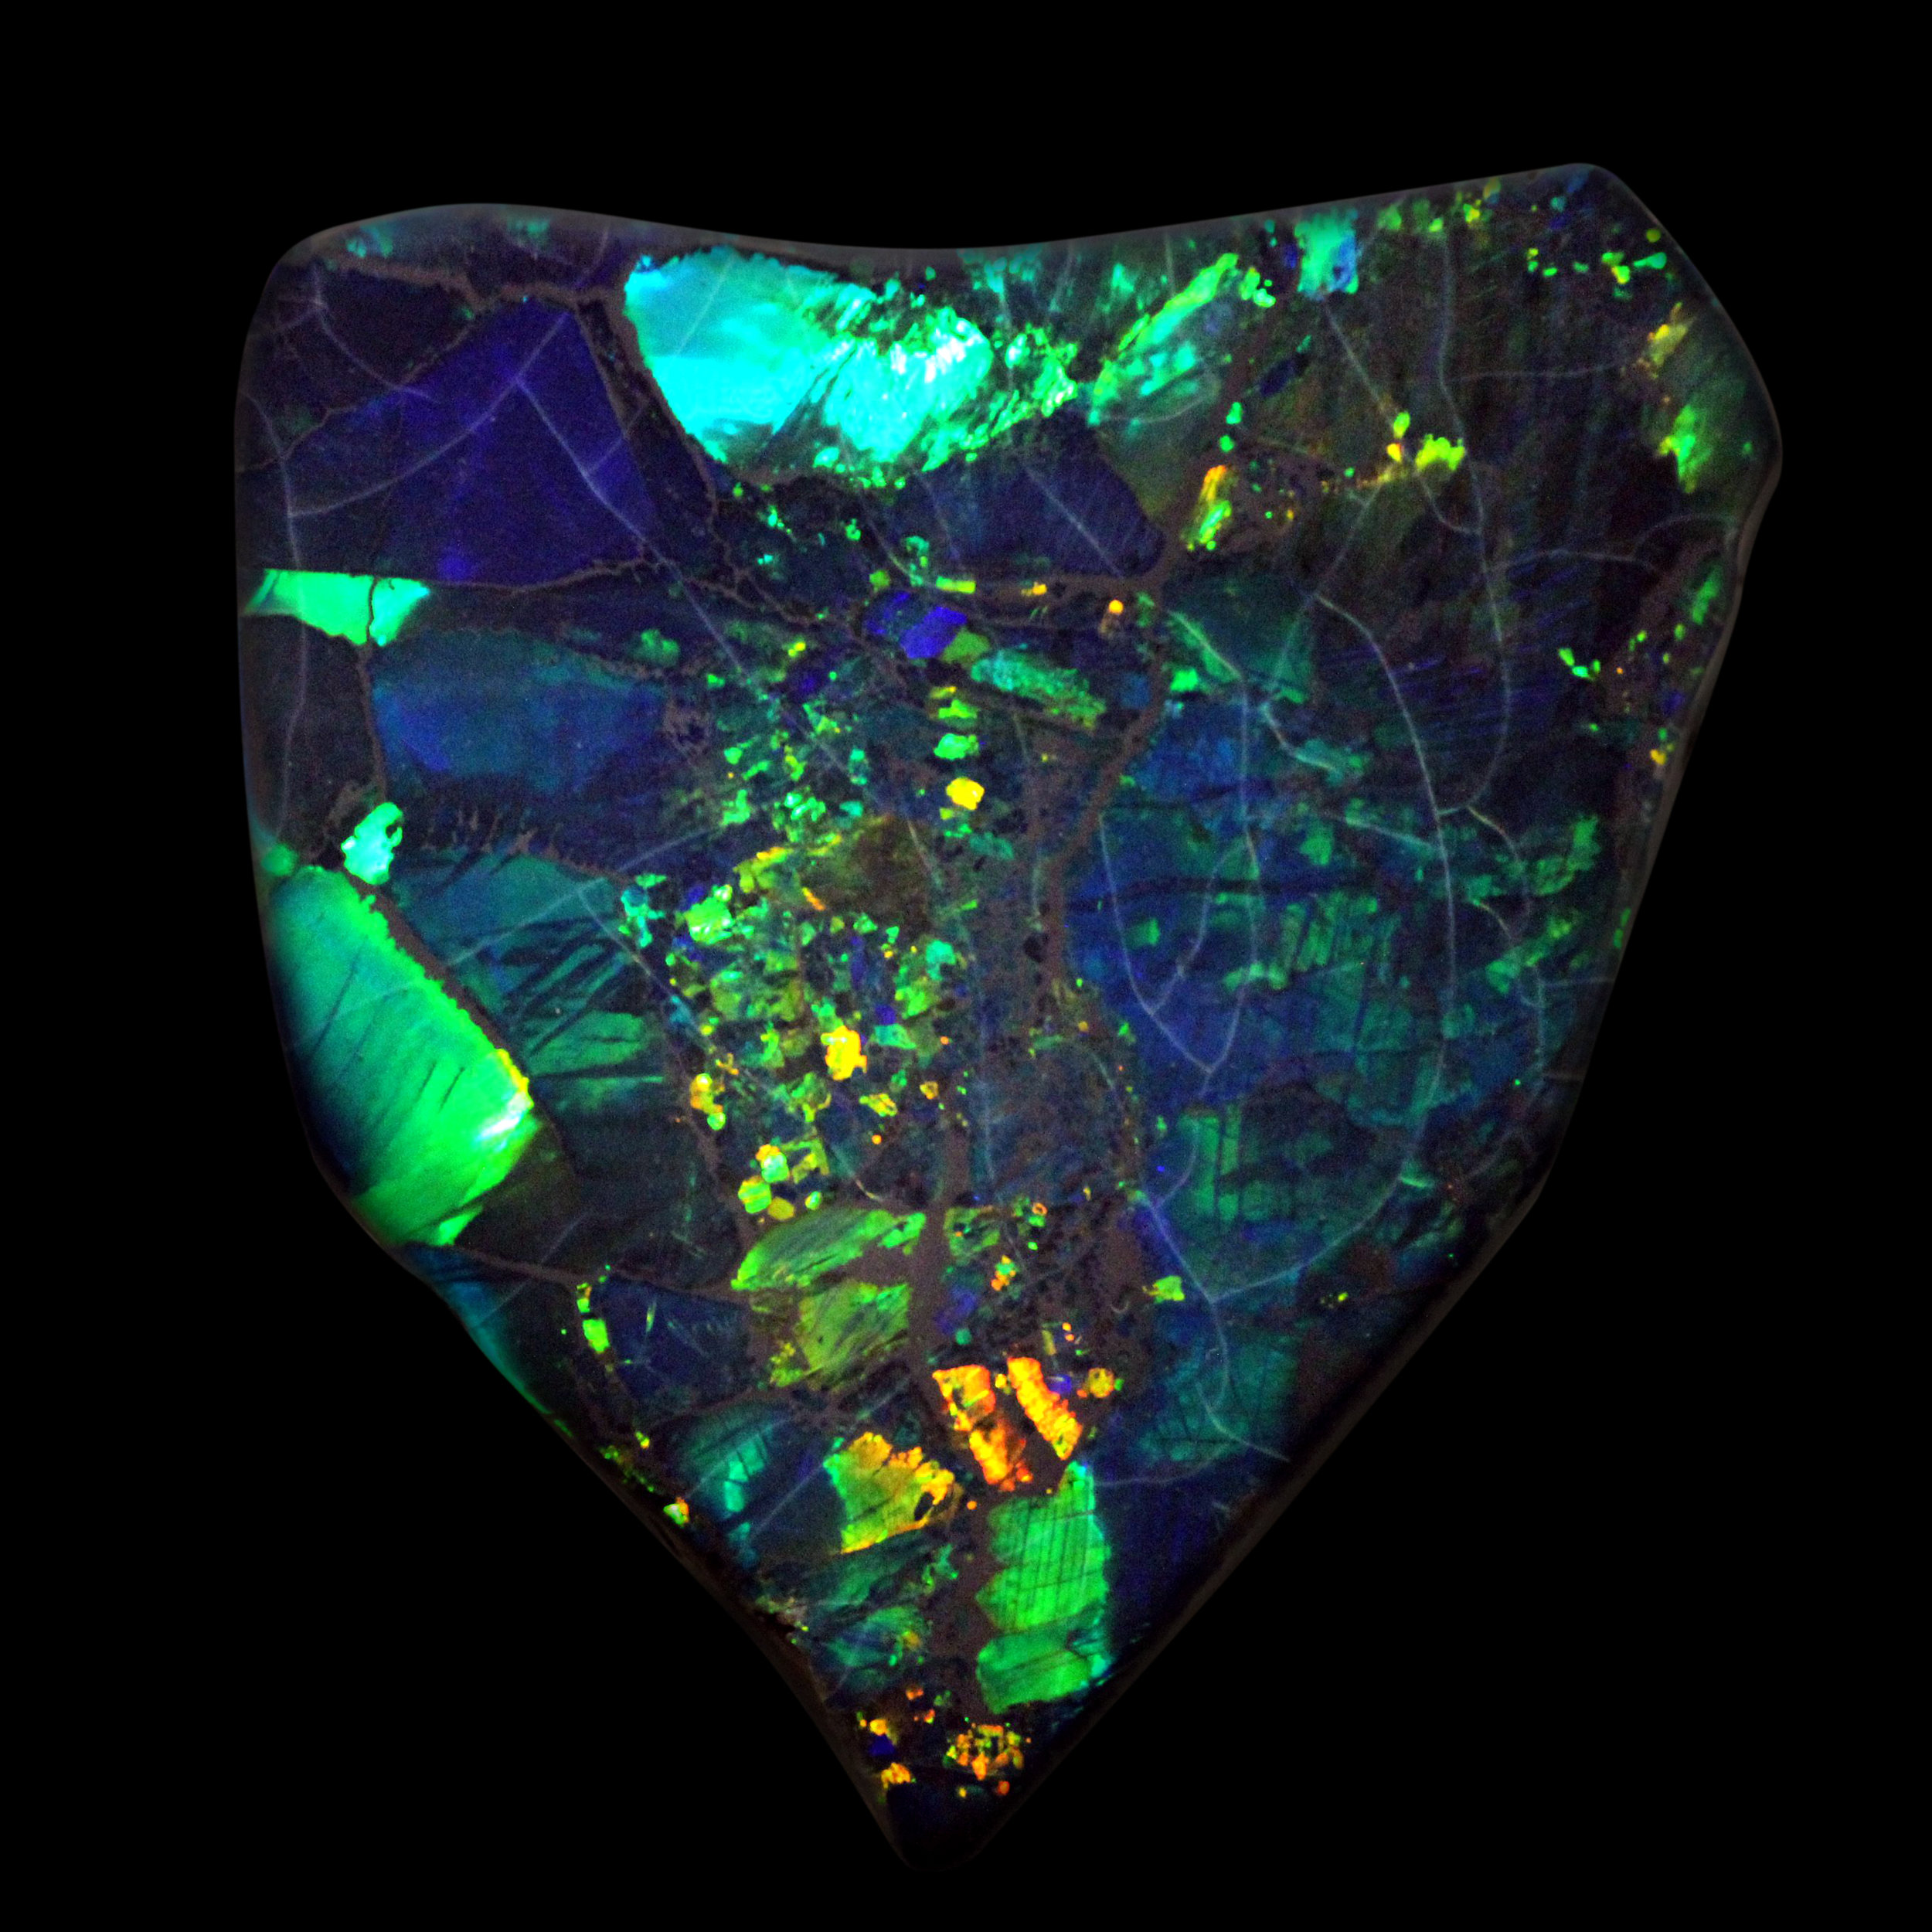 The Black Price Opal